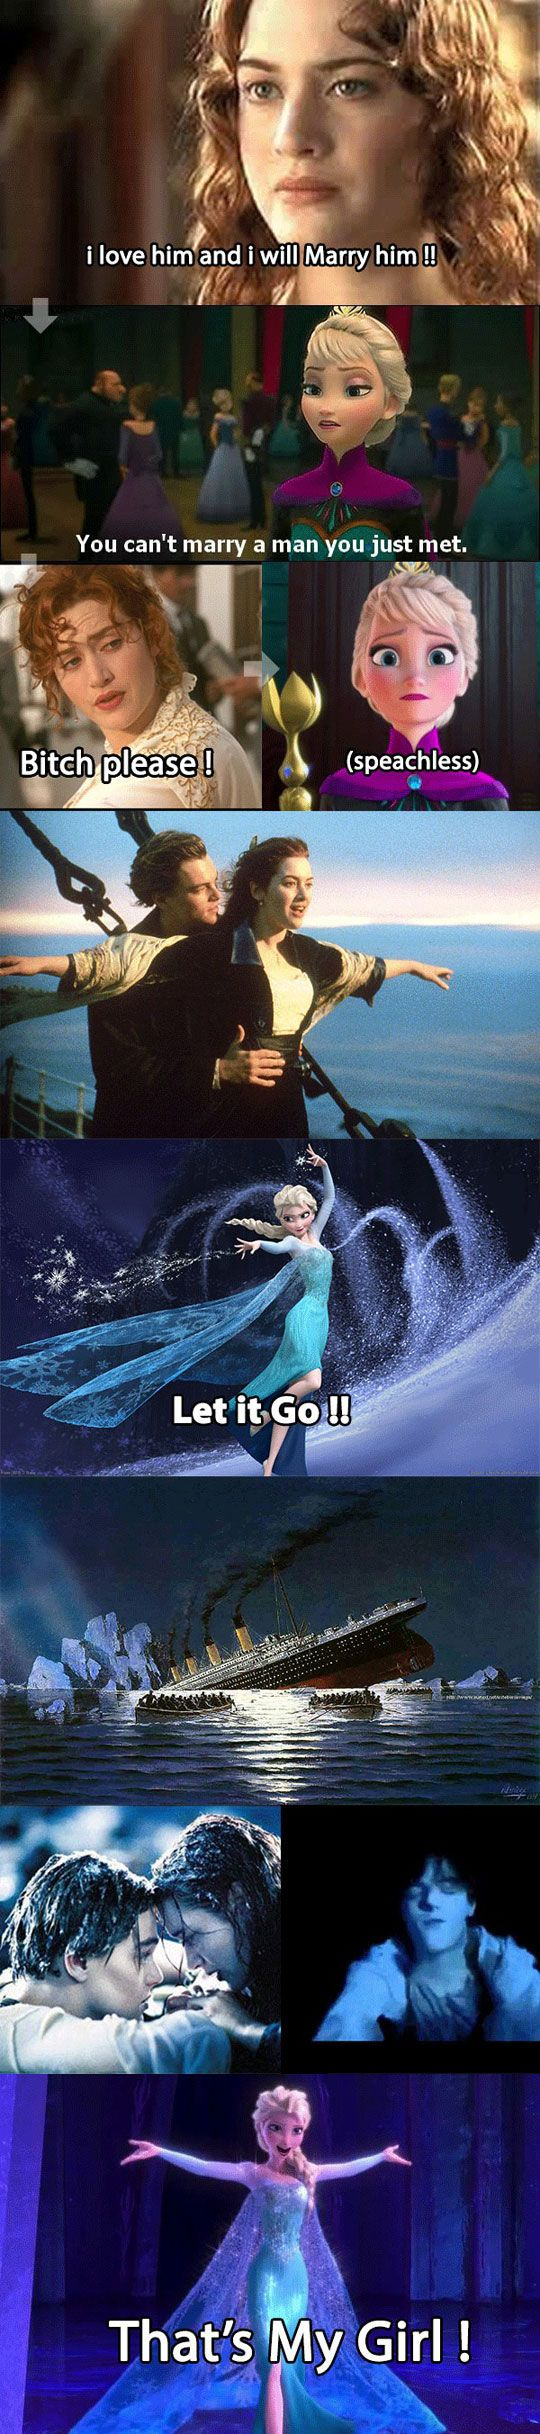 Elsa Joins Titanic // funny pictures - funny photos - funny images - funny pics - funny quotes - #lol #humor #funnypictures